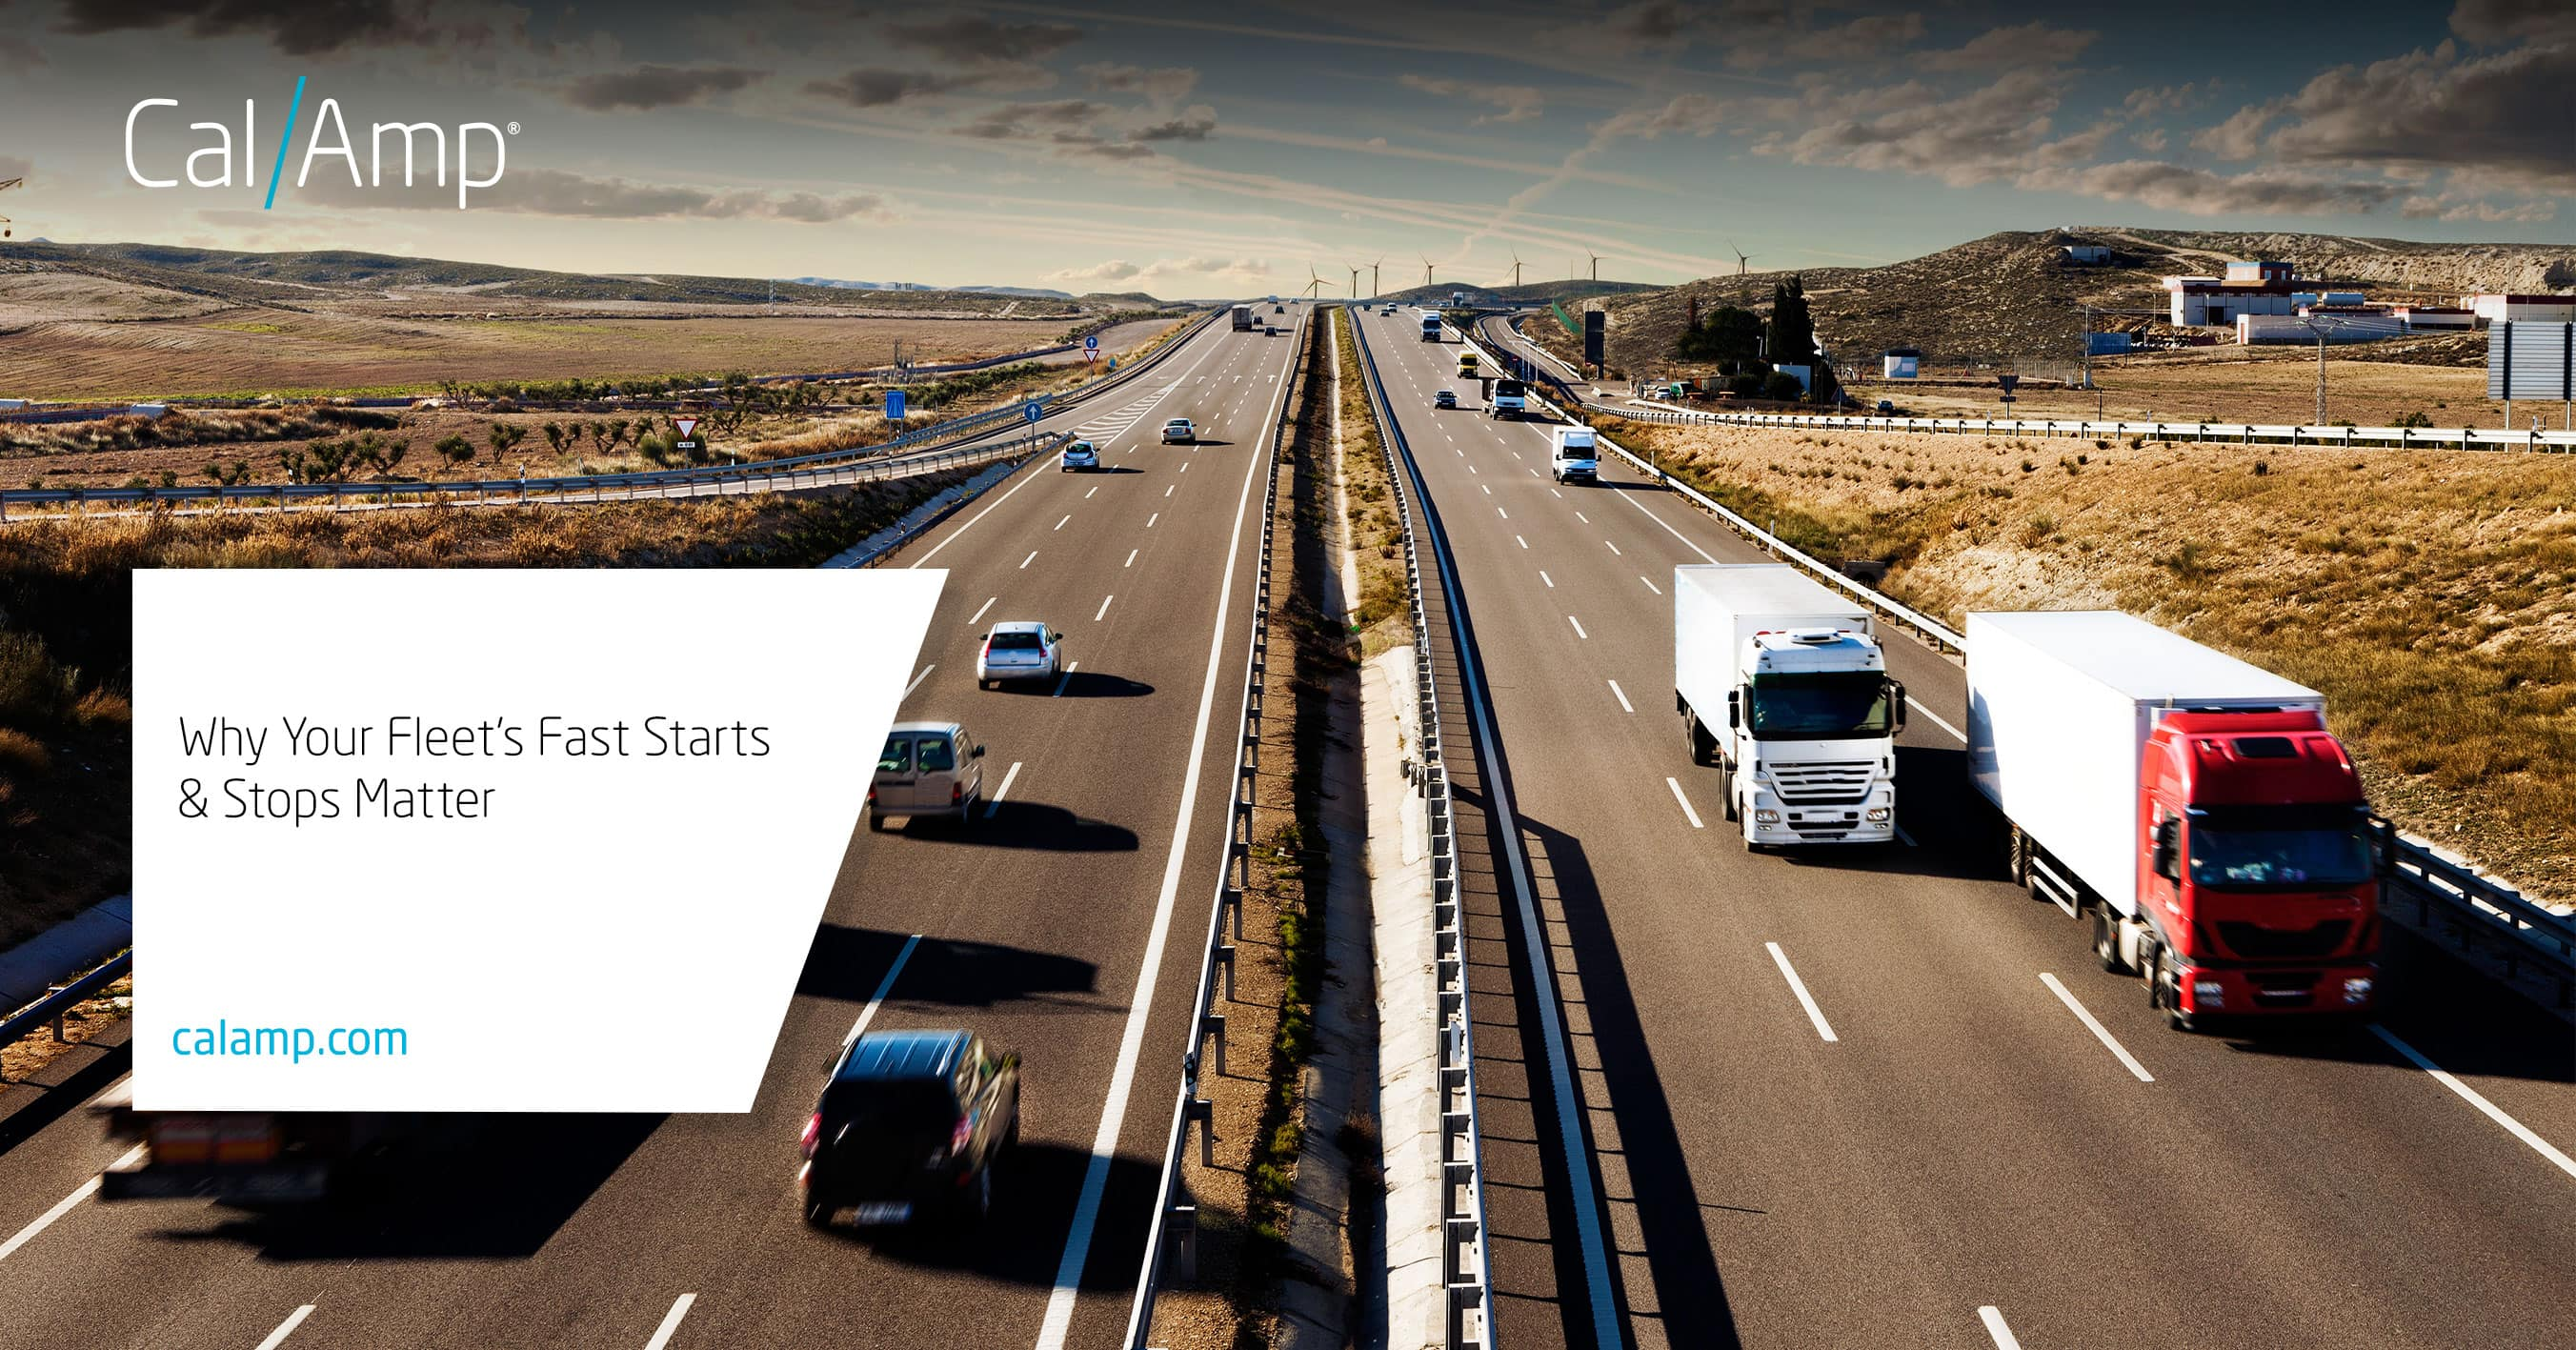 Why Your Fleet's Fast Starts & Stops Matter